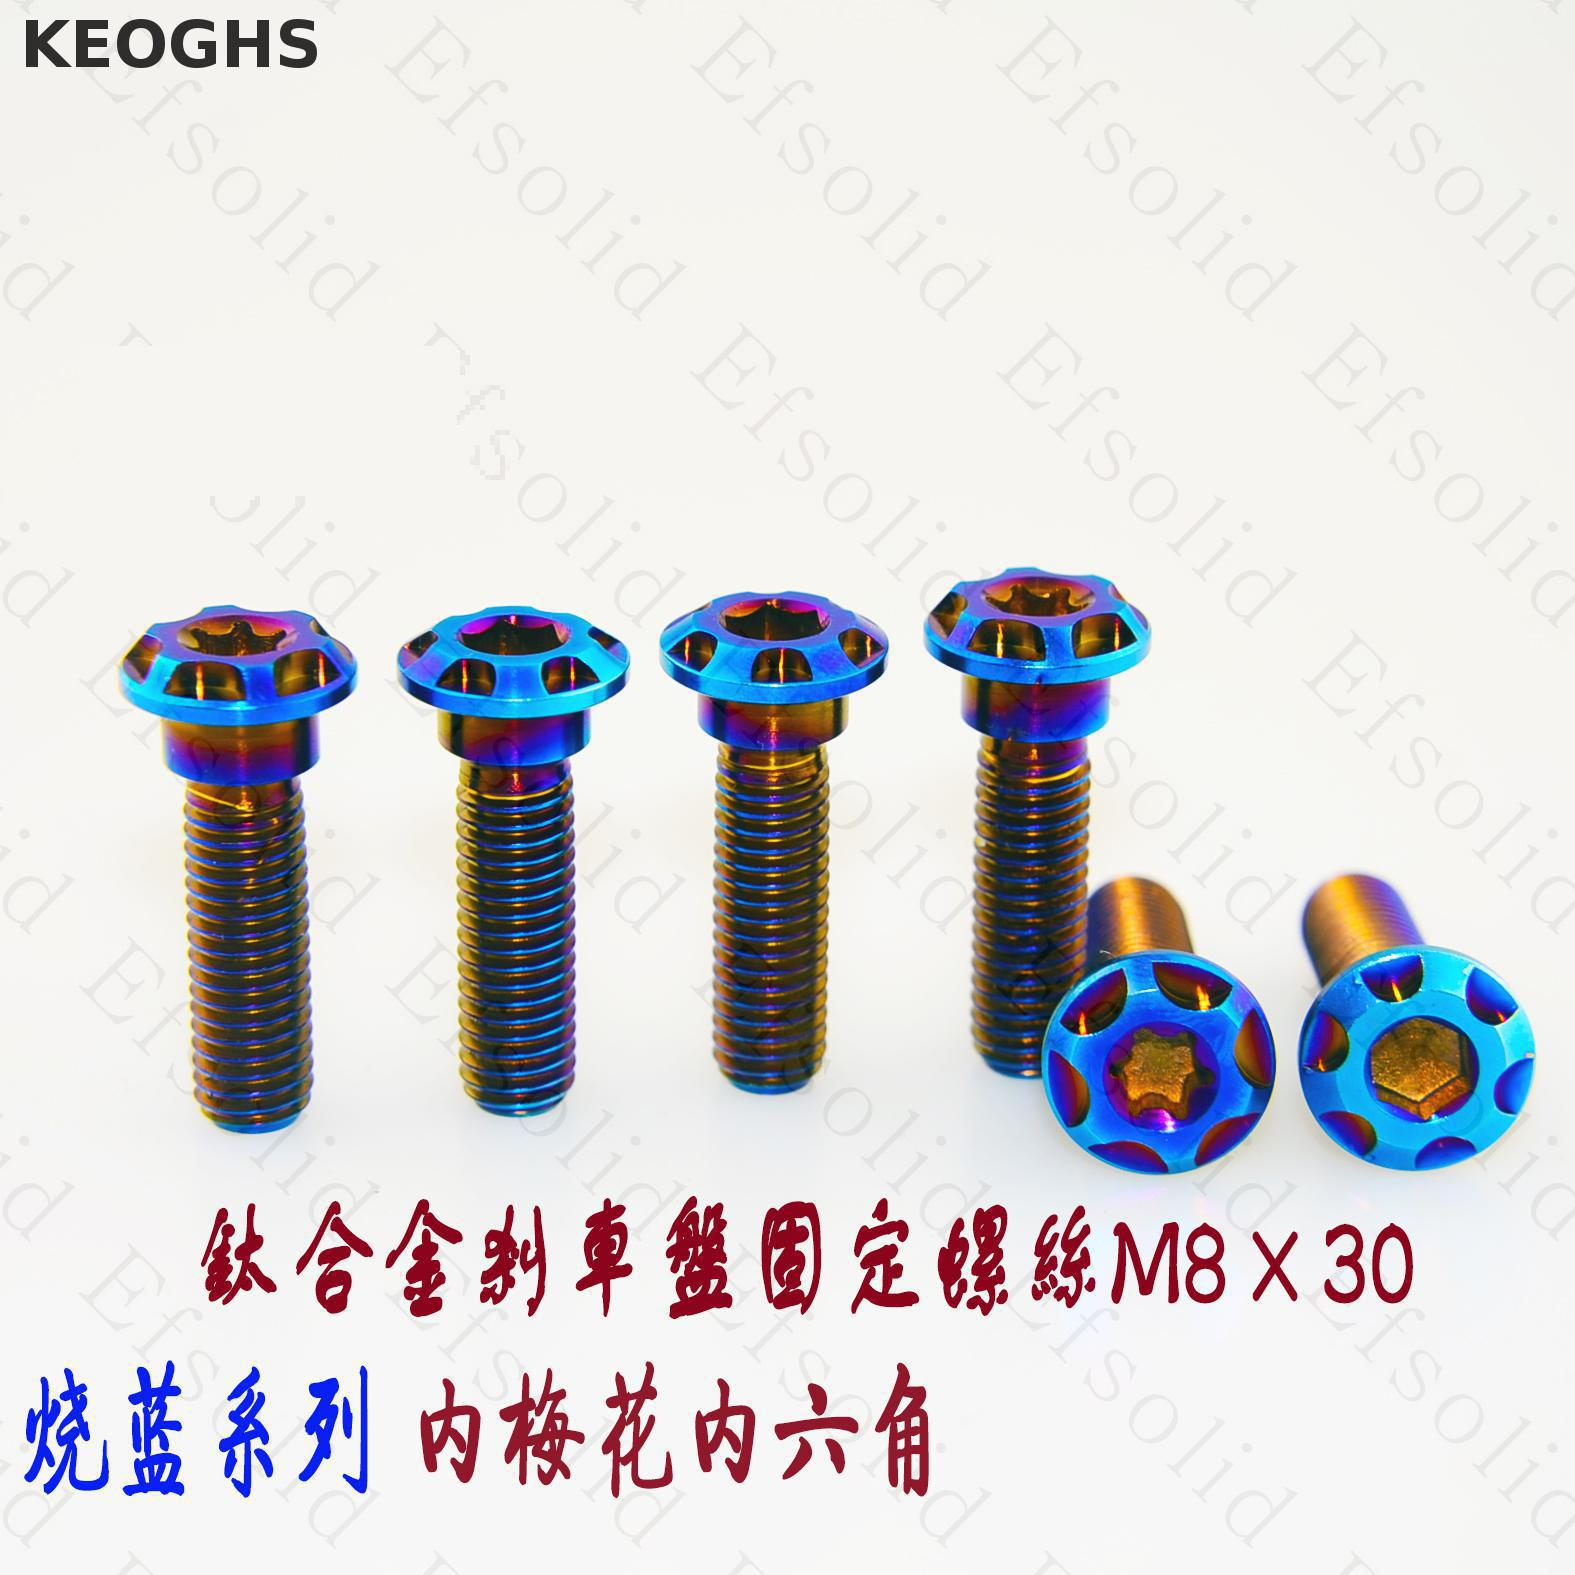 Keoghs Motorcycle Brake Disc Screws With Step M8*30 High Quality Tc4 Titanium For Honda Yamaha Kawasaki Suzuki Ktm Bmw Aprilia keoghs motorcycle brake disc brake rotor floating 260mm 82mm diameter cnc for yamaha scooter bws cygnus front disc replace